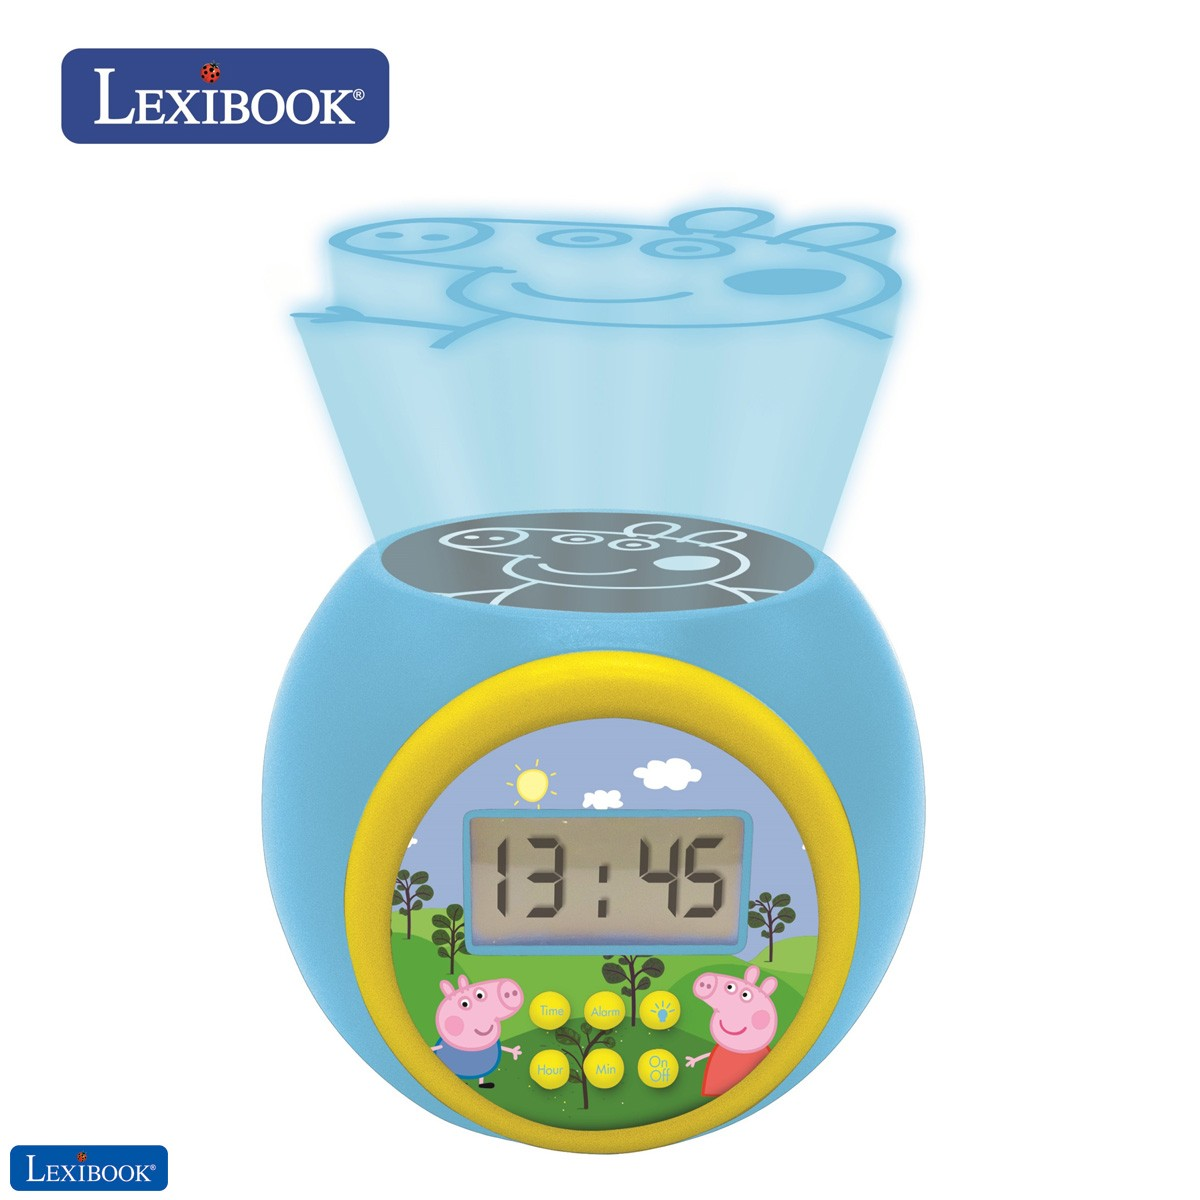 Projector Alarm Clock Peppa Pig with snooze function and alarm function